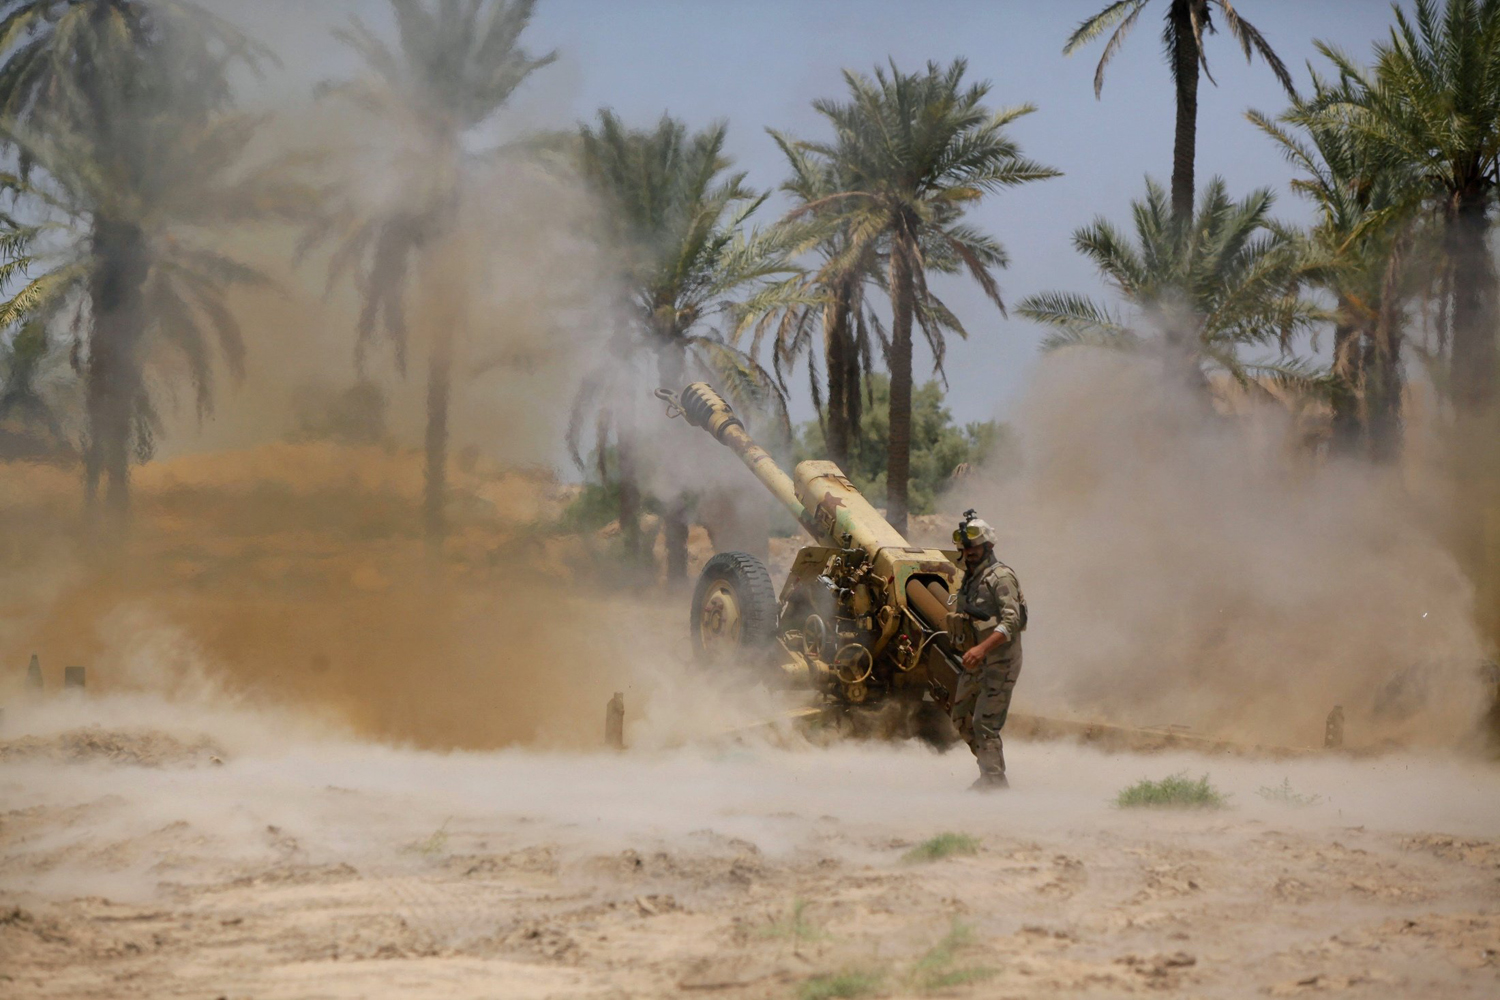 Iraqi security forces fire artillery during clashes with Sunni militant group Islamic State of Iraq and Syria (ISIS) in Jurf al-Sakhar June 14.